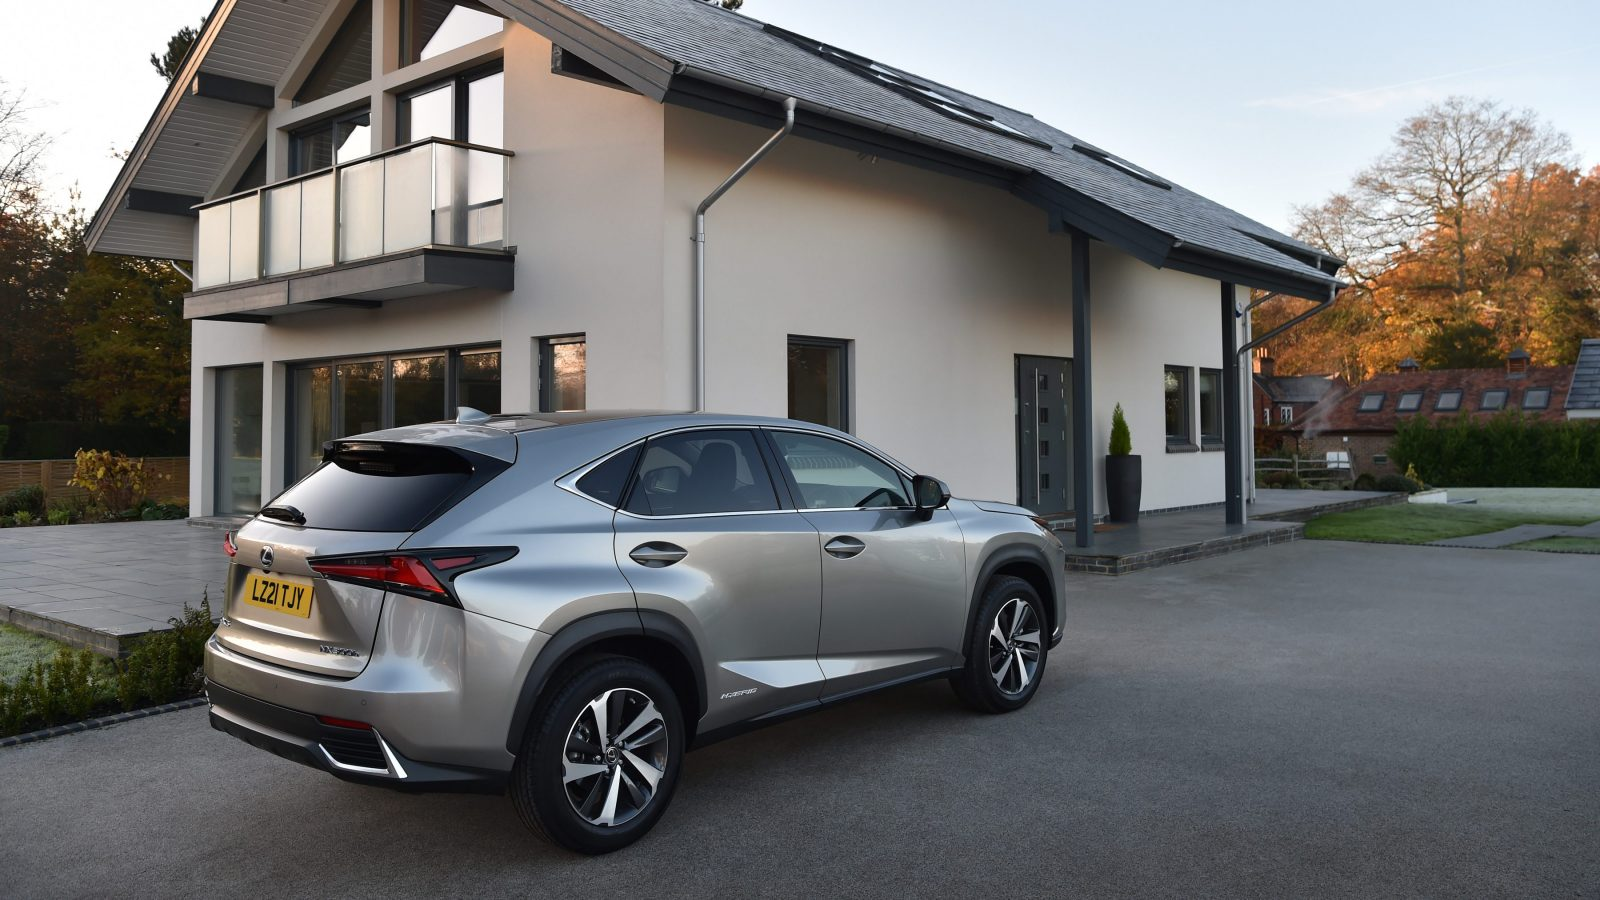 LEXUS NX PREMIER WITH PANORAMIC ROOF